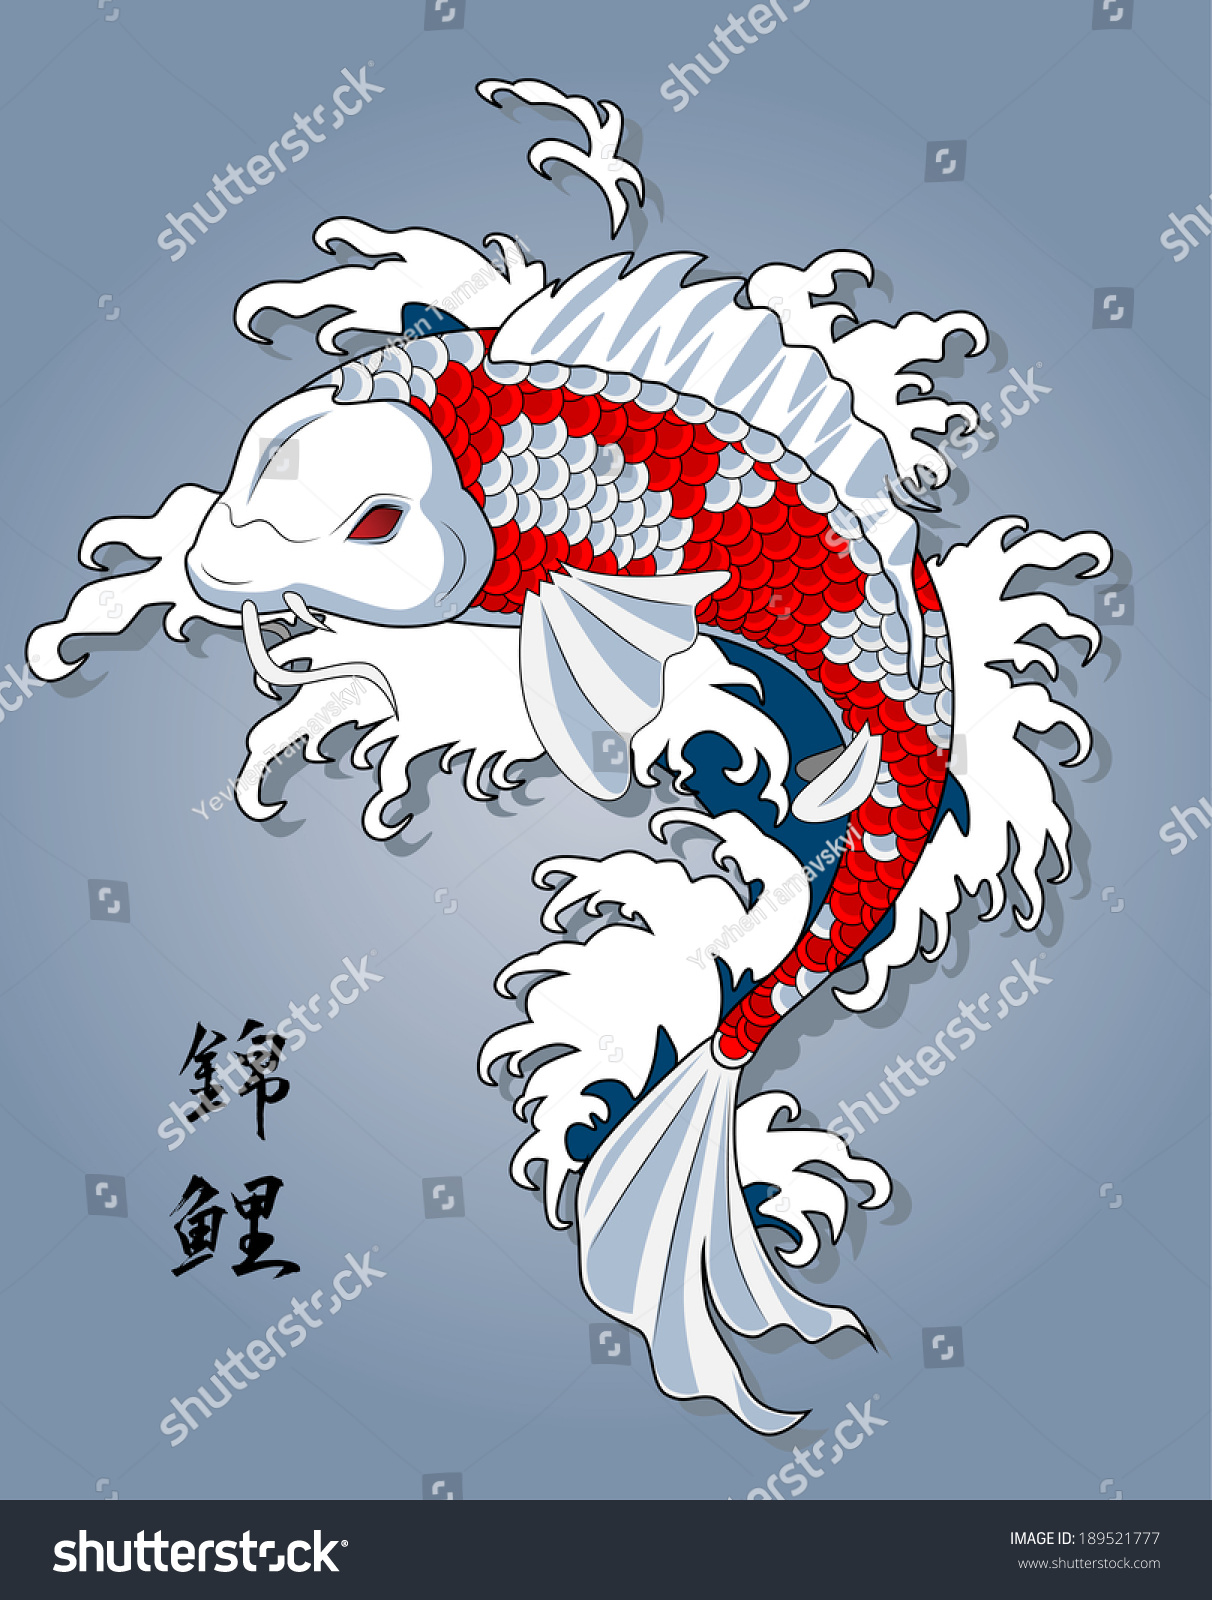 Vector japan koi fish amongst the waves characters meaning for Koi meaning in english